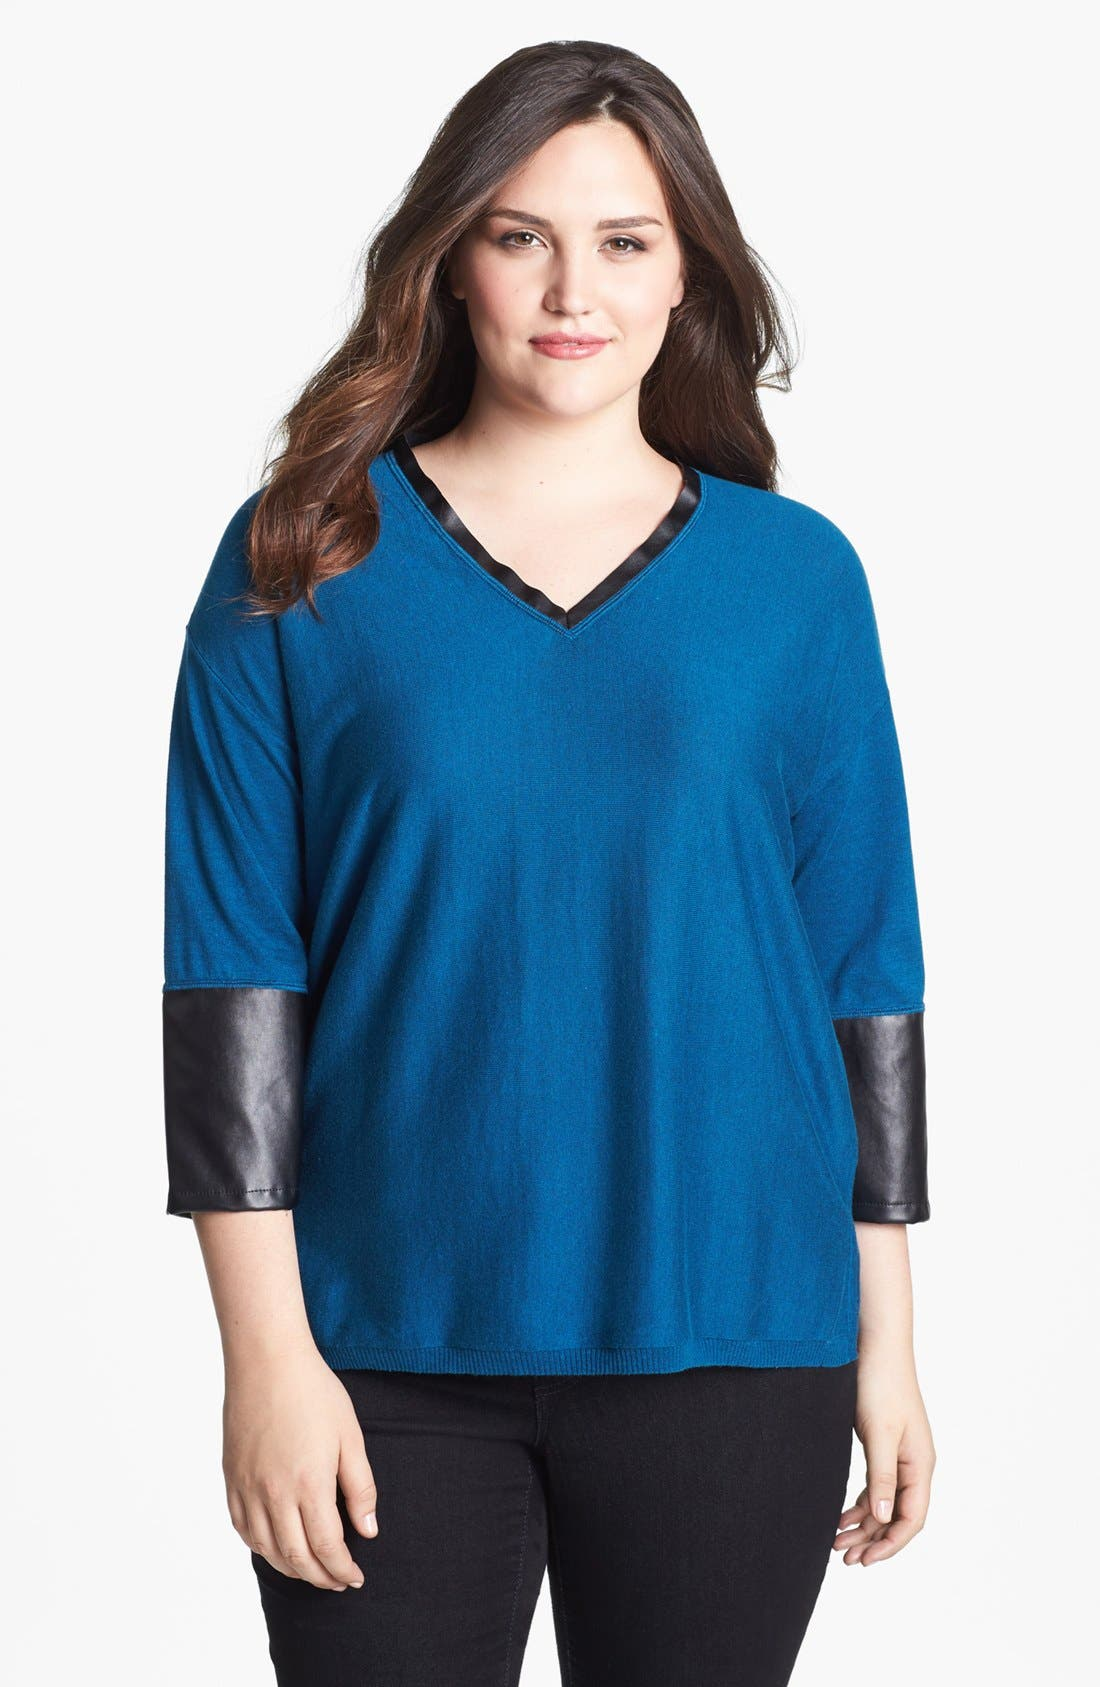 Alternate Image 1 Selected - Sejour 'Dove' Faux Leather Trim Pullover (Plus Size)